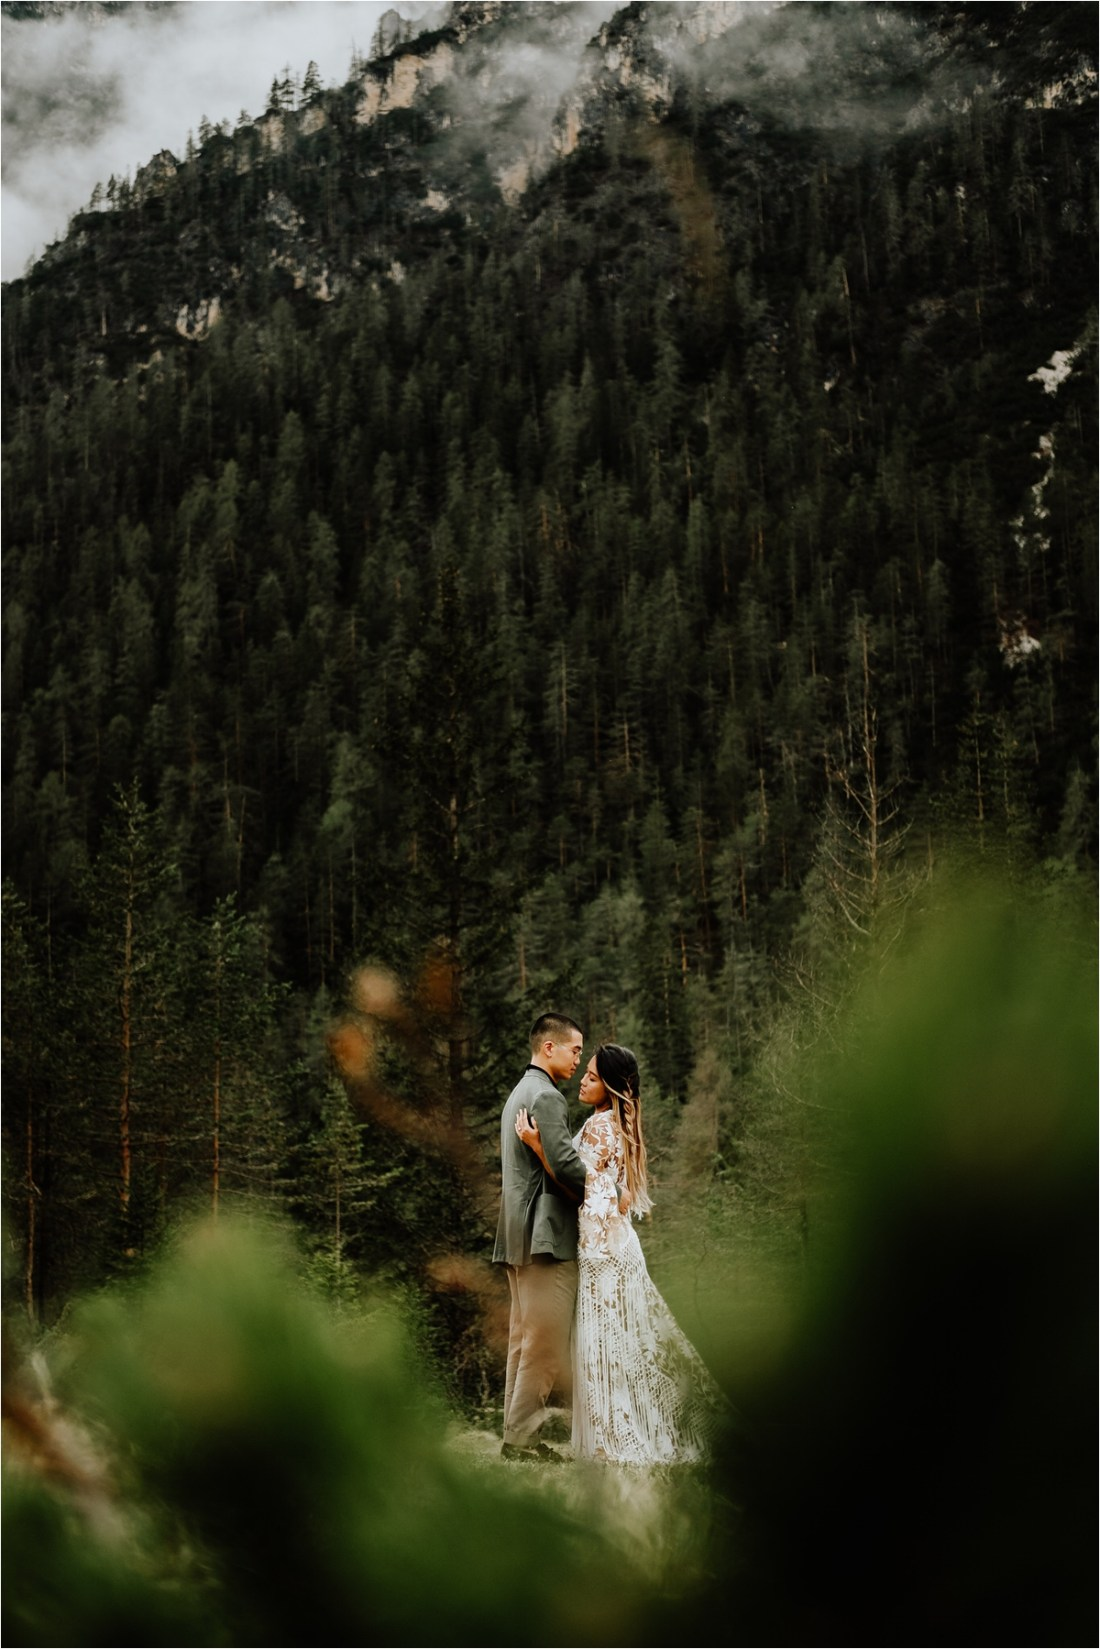 Christina & Ted embrace in the Dolomites for the pre-wedding photos by Wild Connections Photography